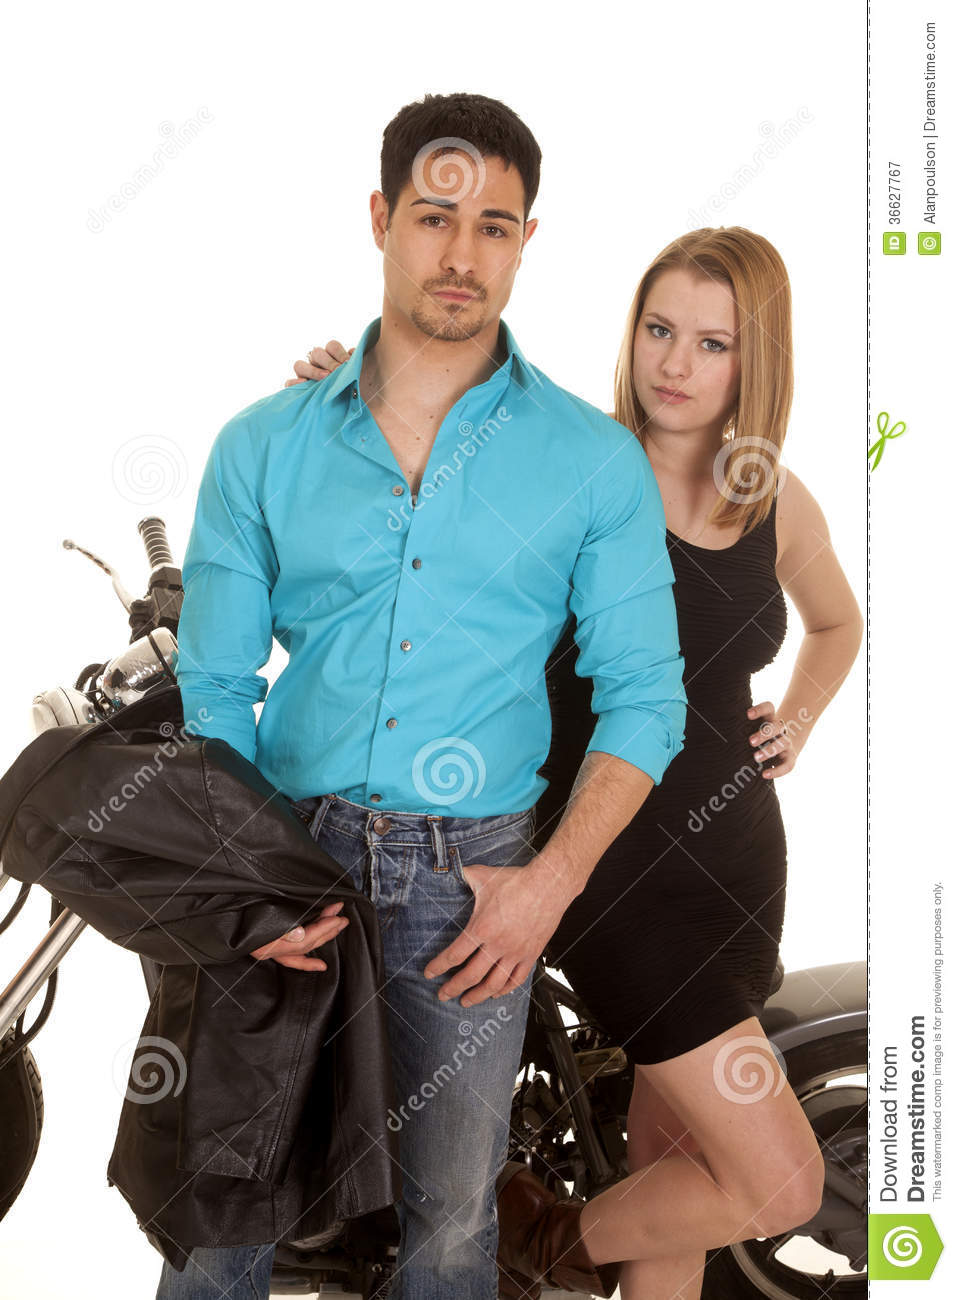 Moto de support de veste de prise de couples